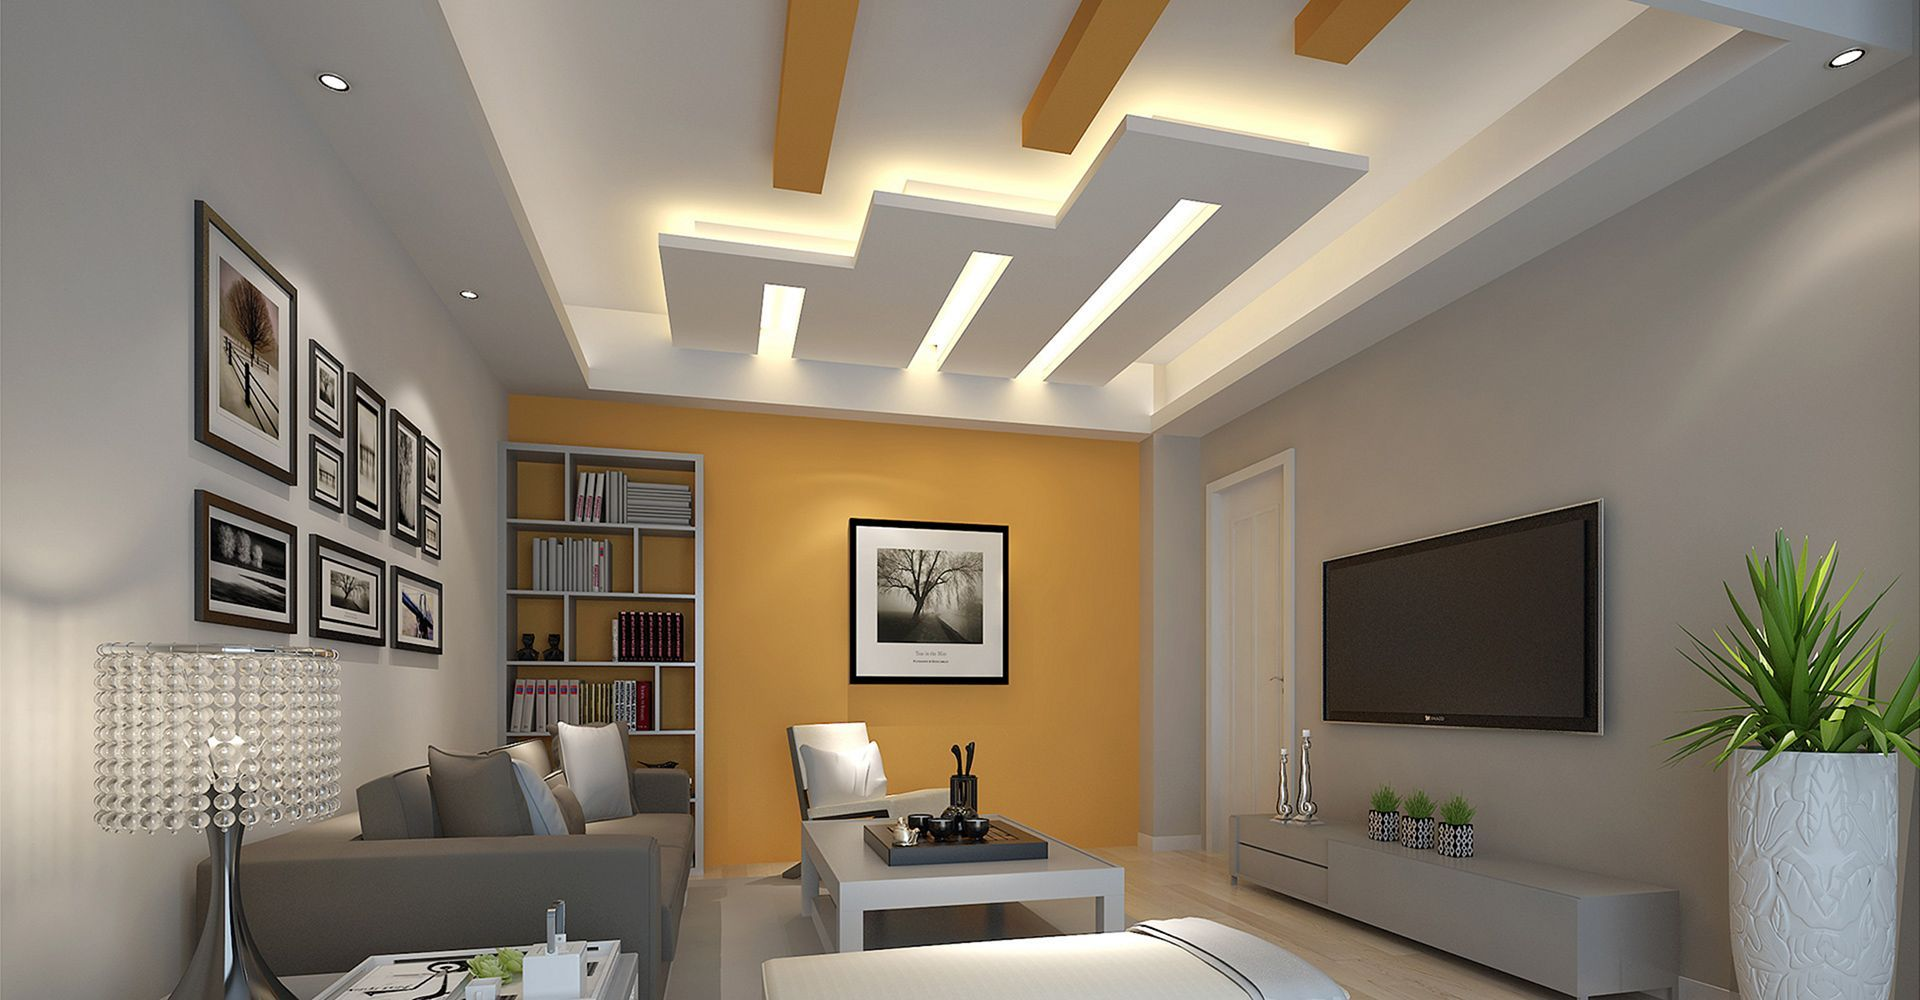 25 Most Beautiful Home Interior Design Ideas For Your Future Home